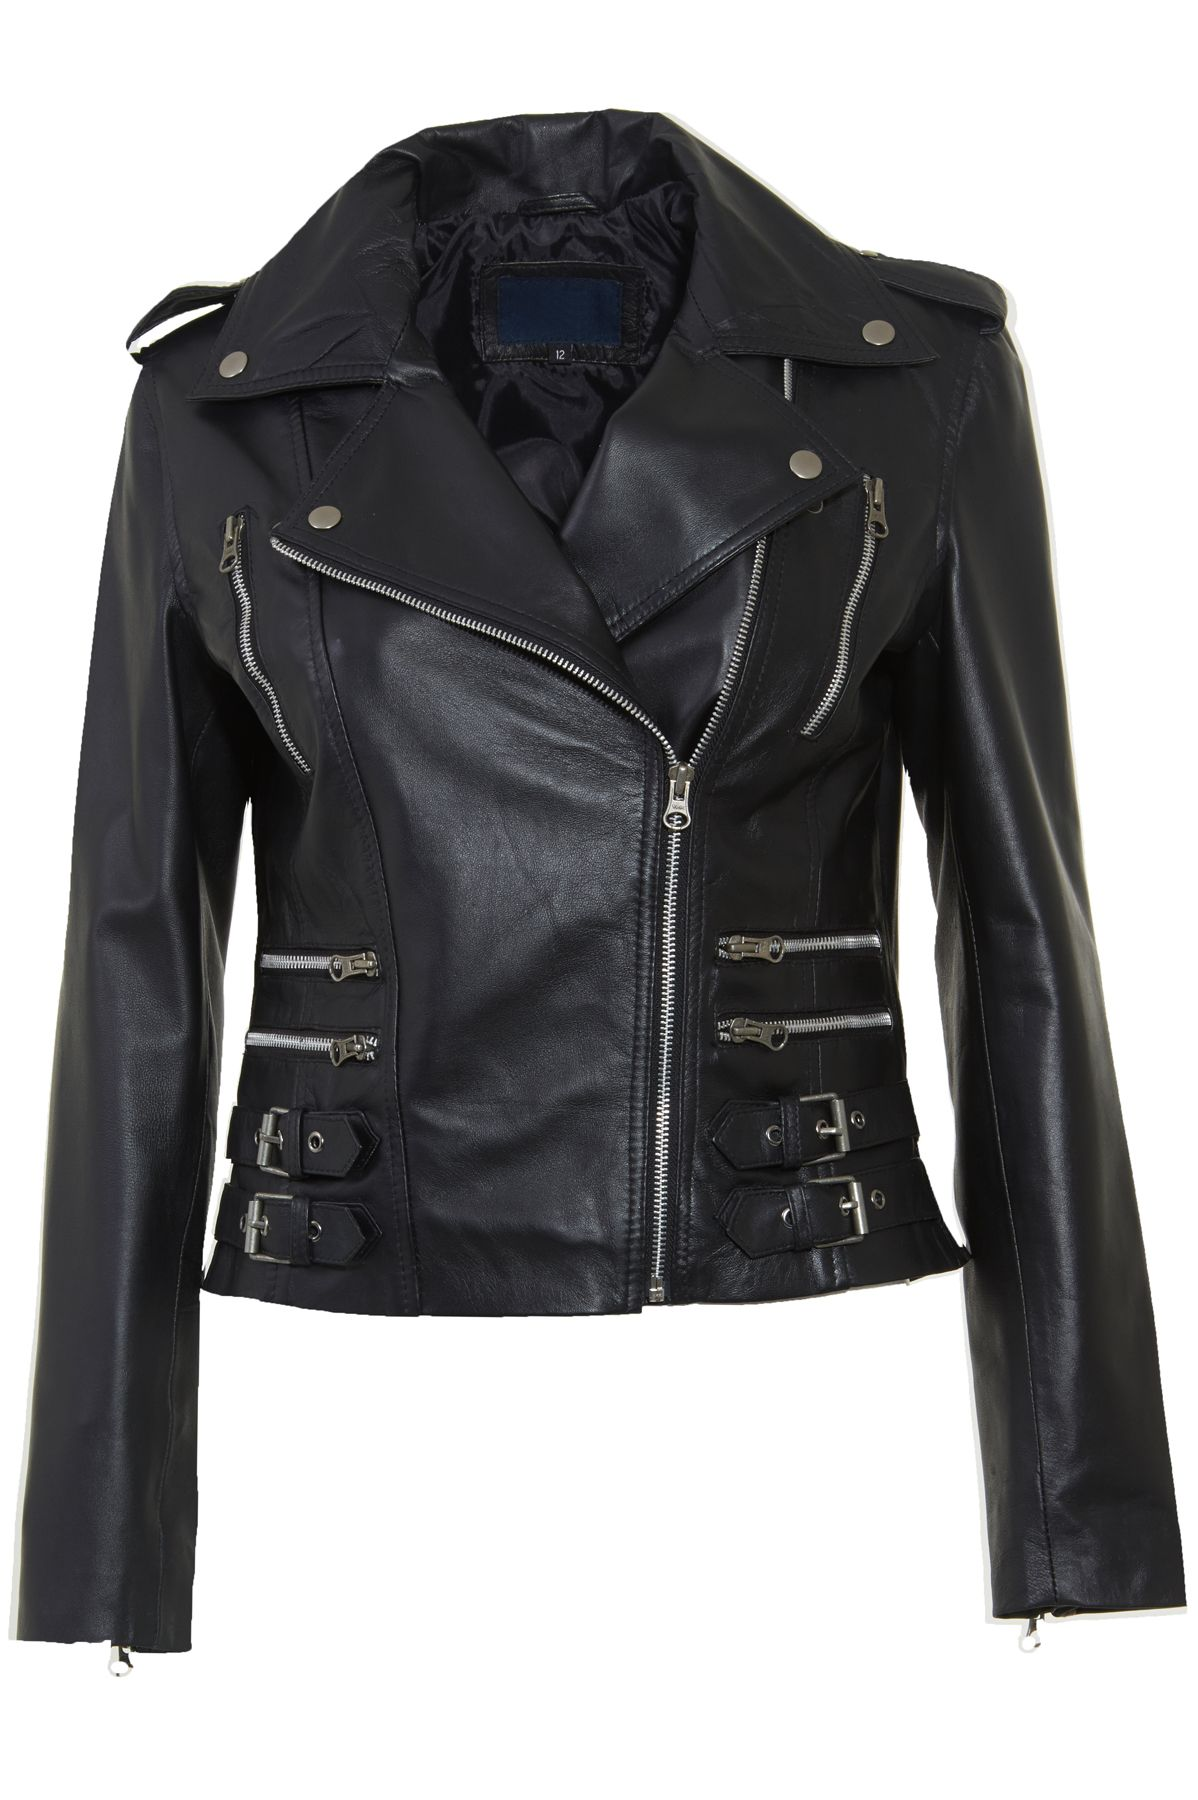 Womens Black Leather Biker Jacket with Zip Detail Faith